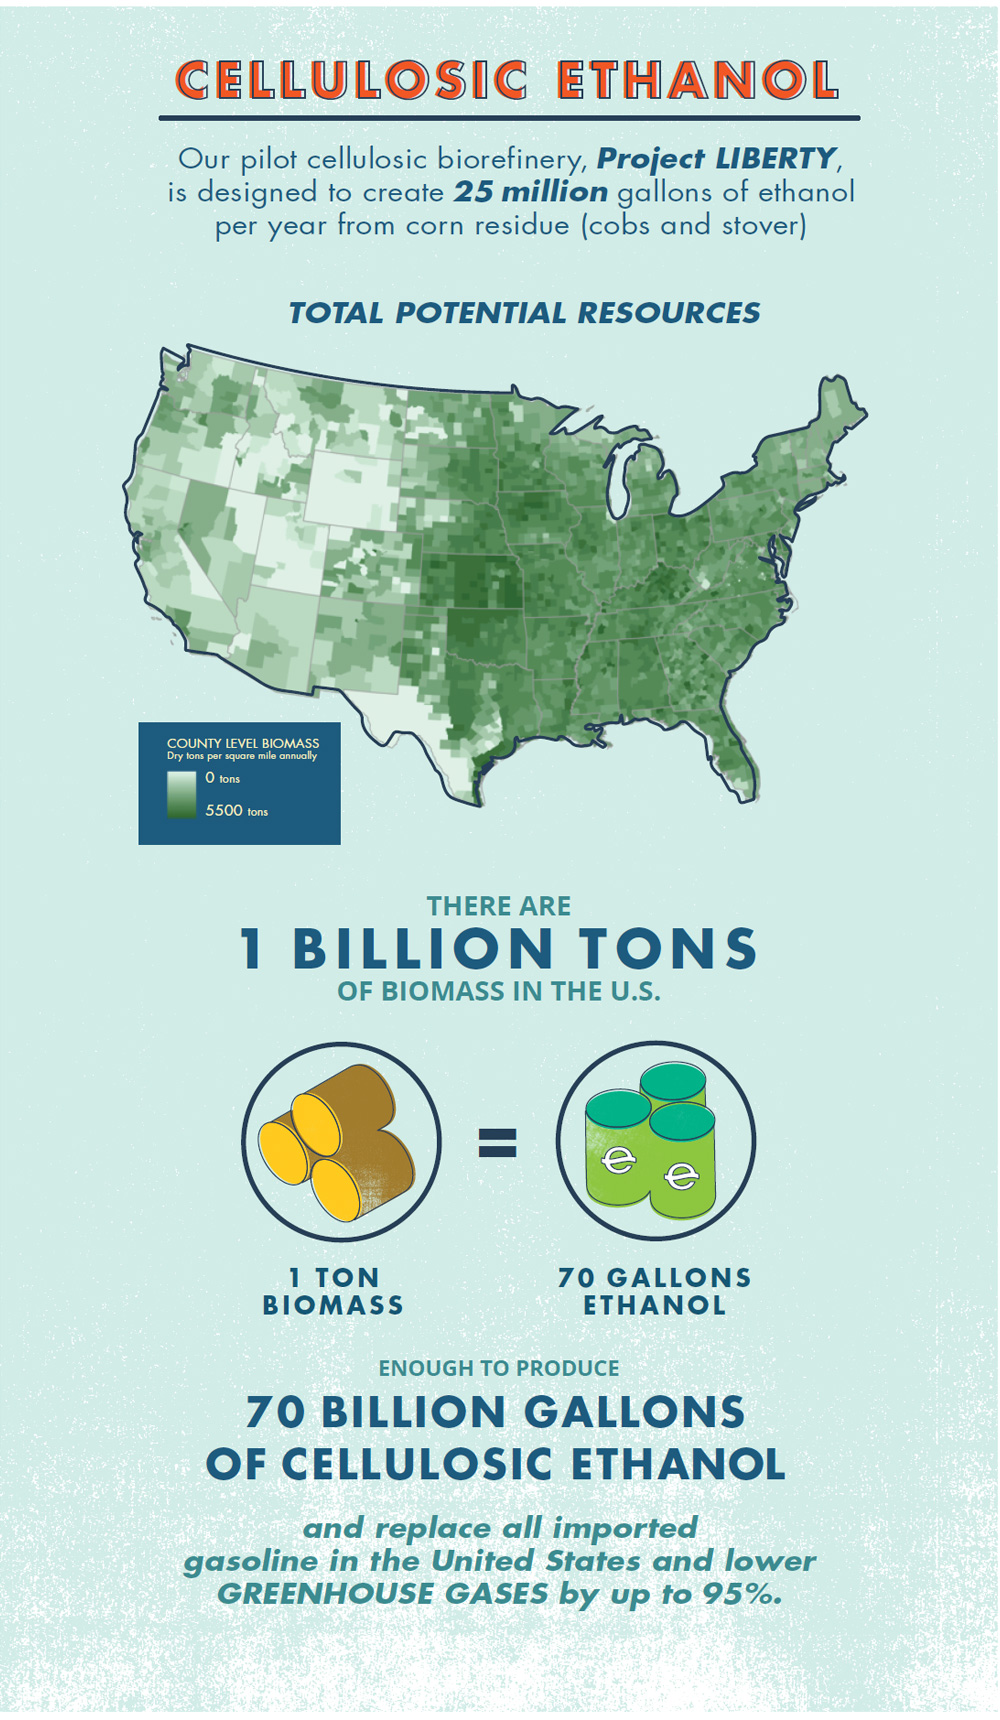 CELLULOSIC ETHANOL: POET's pilot cellulosic biorefinery is designed to create 25 million gallons of ethanol per year from corn residue (cobs and stover), displacing the equivalent of 1.32 million barrels of crude oil and reducing CO2 emissions by 210,000 tons.